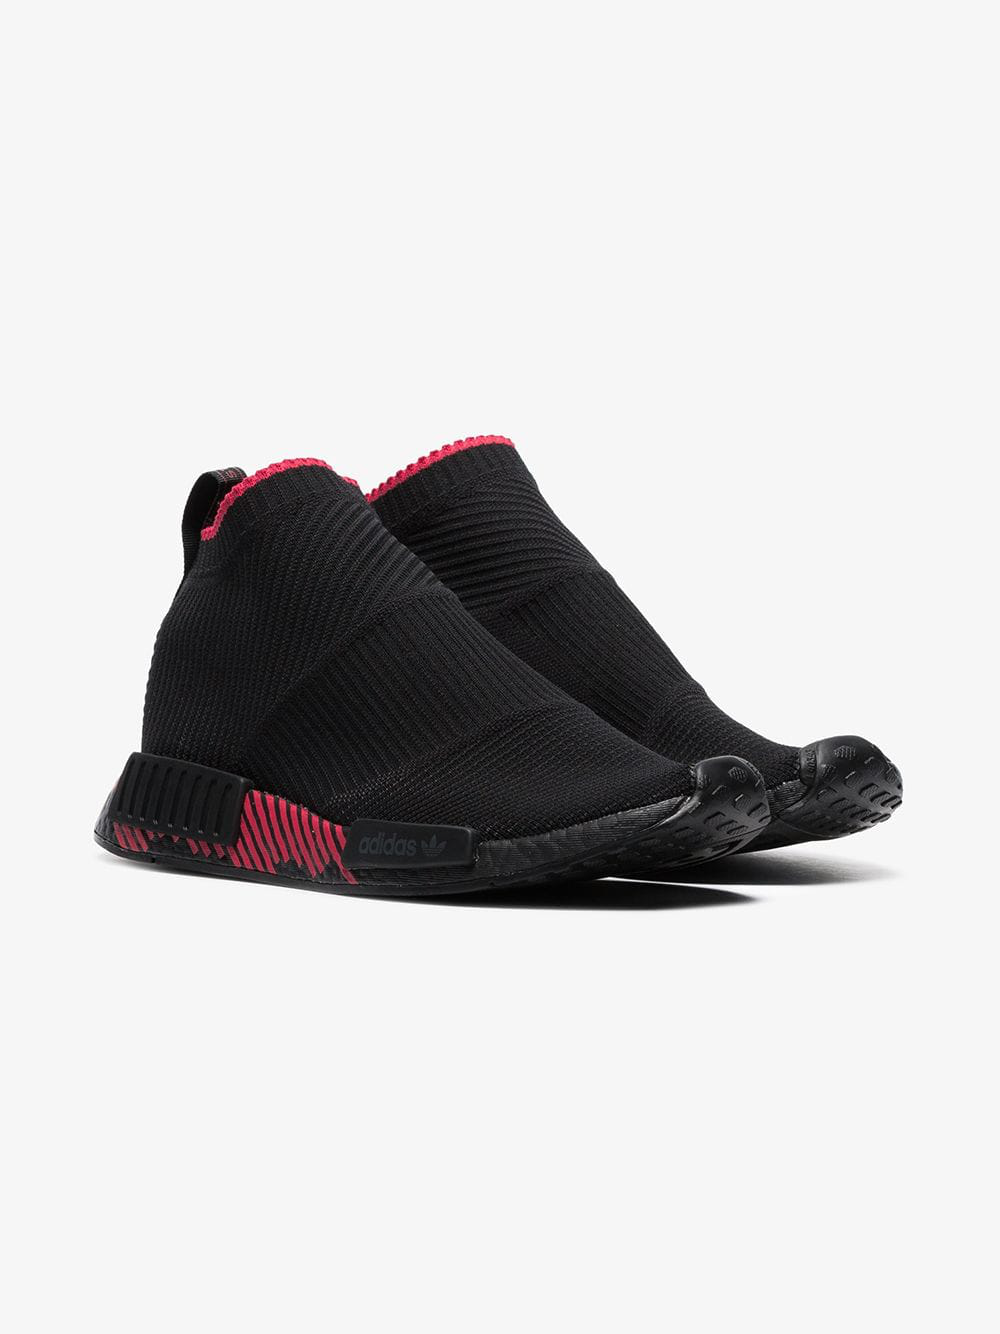 b9bd7d44f77e7 Adidas Originals Adidas Black And Red Nmd Racer Solar Sneakers ...